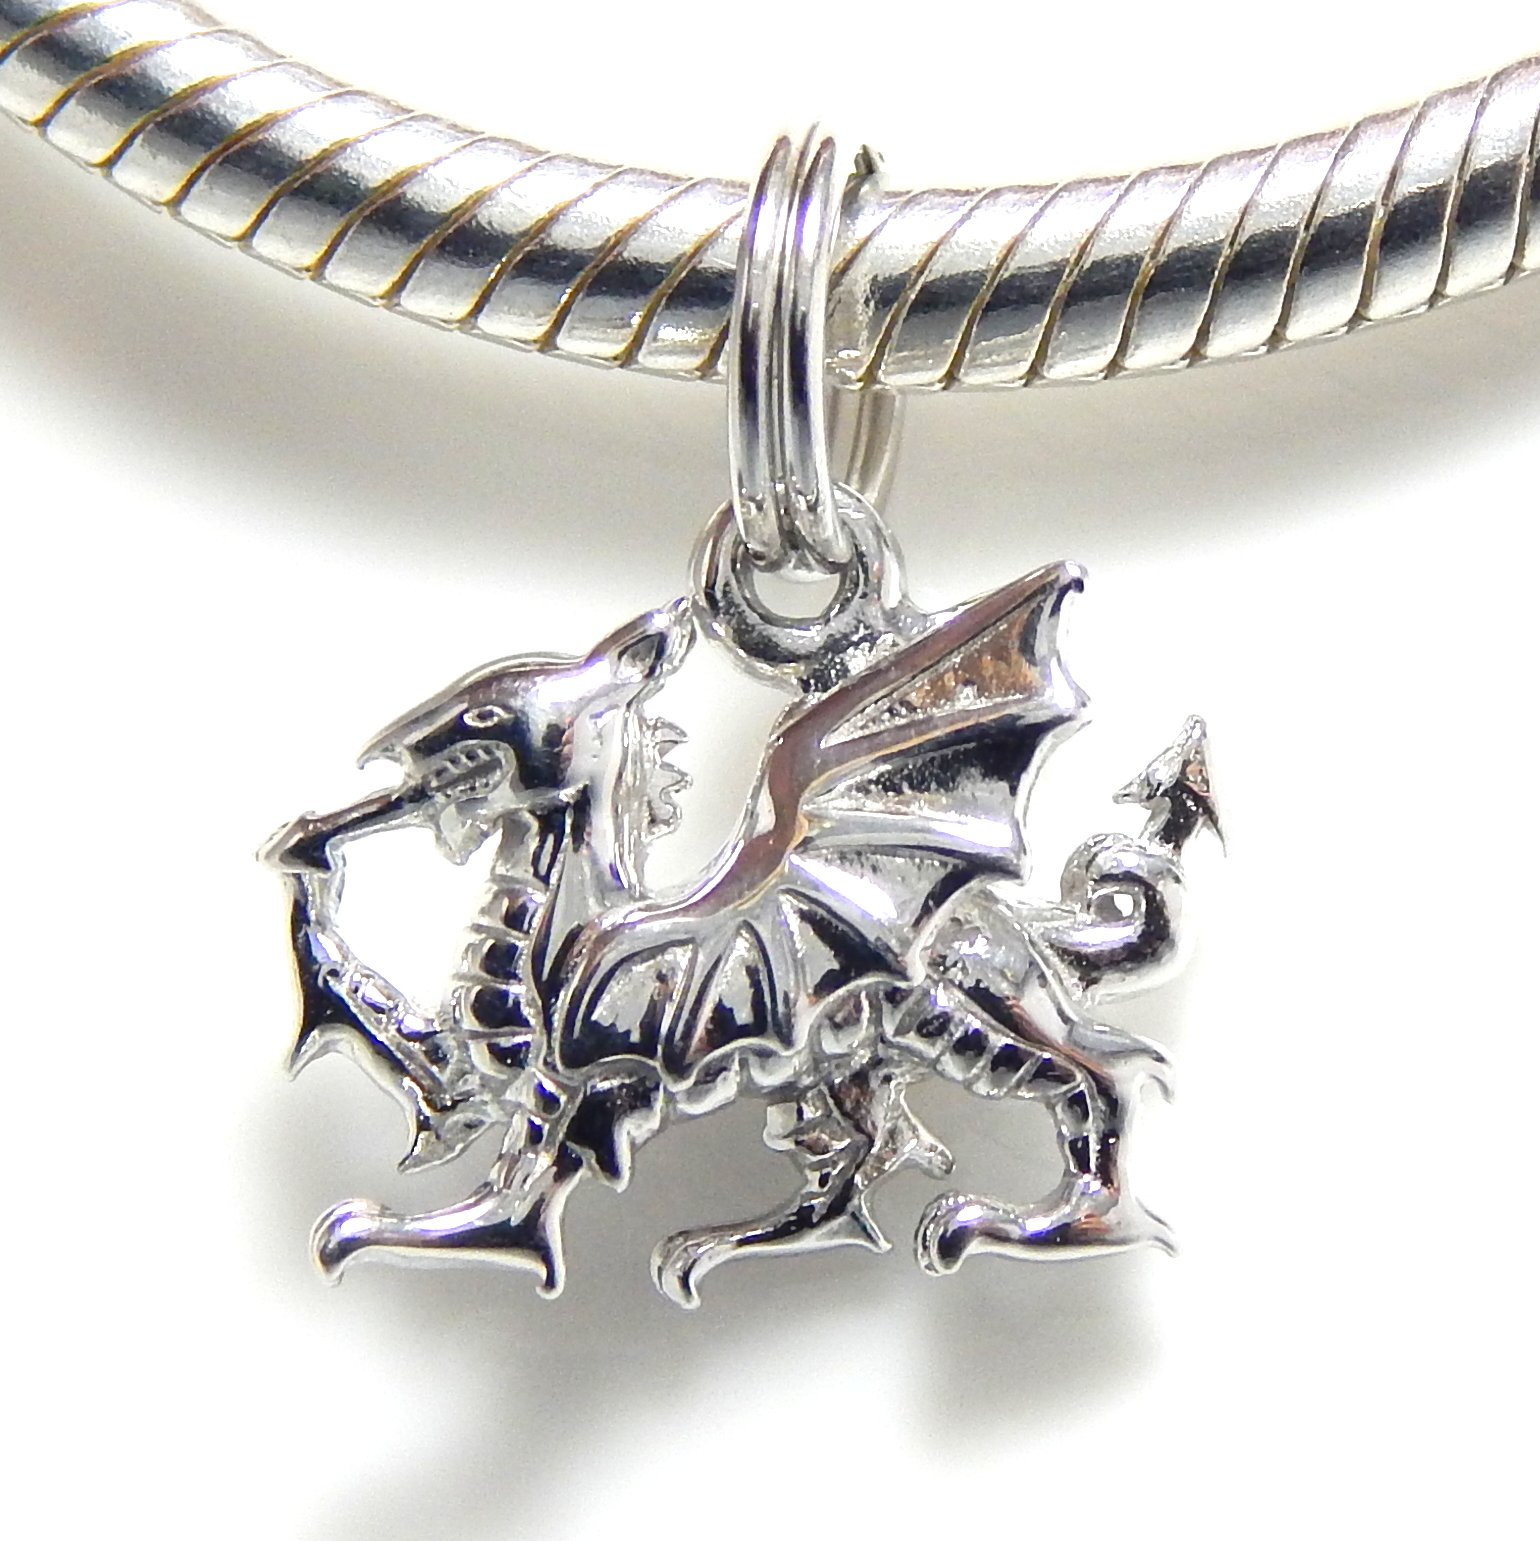 Pro Jewelry .925 Sterling Silver Dangling ''Dragon'' Split Ring Top Charm Bead for Snake Chain Charm Bracelet ESR JB 5090 RP